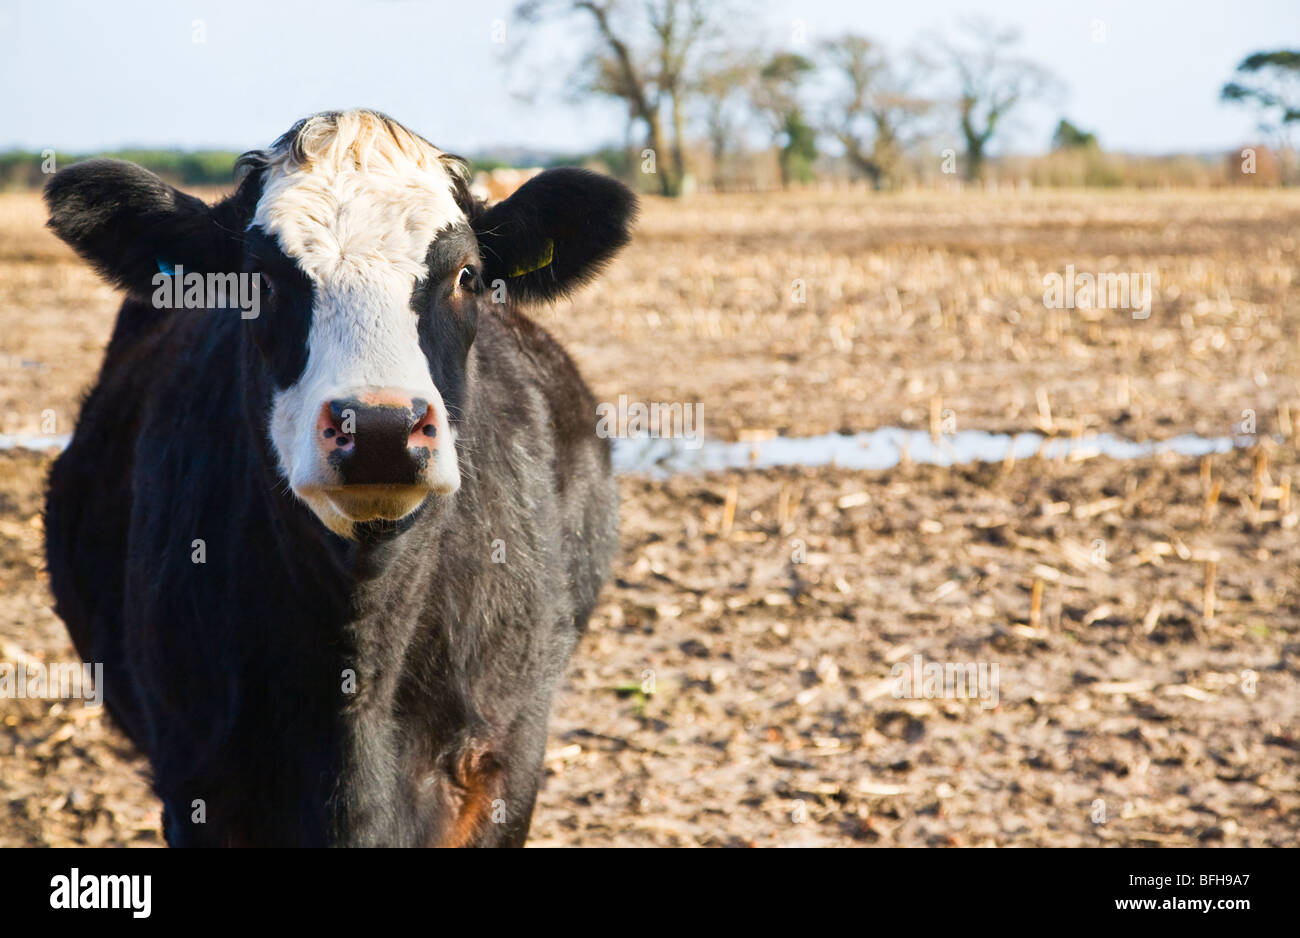 A black and white cow standing in an empty wet stubble field. Borders of Dorset and Hampshire. UK. Winter. - Stock Image